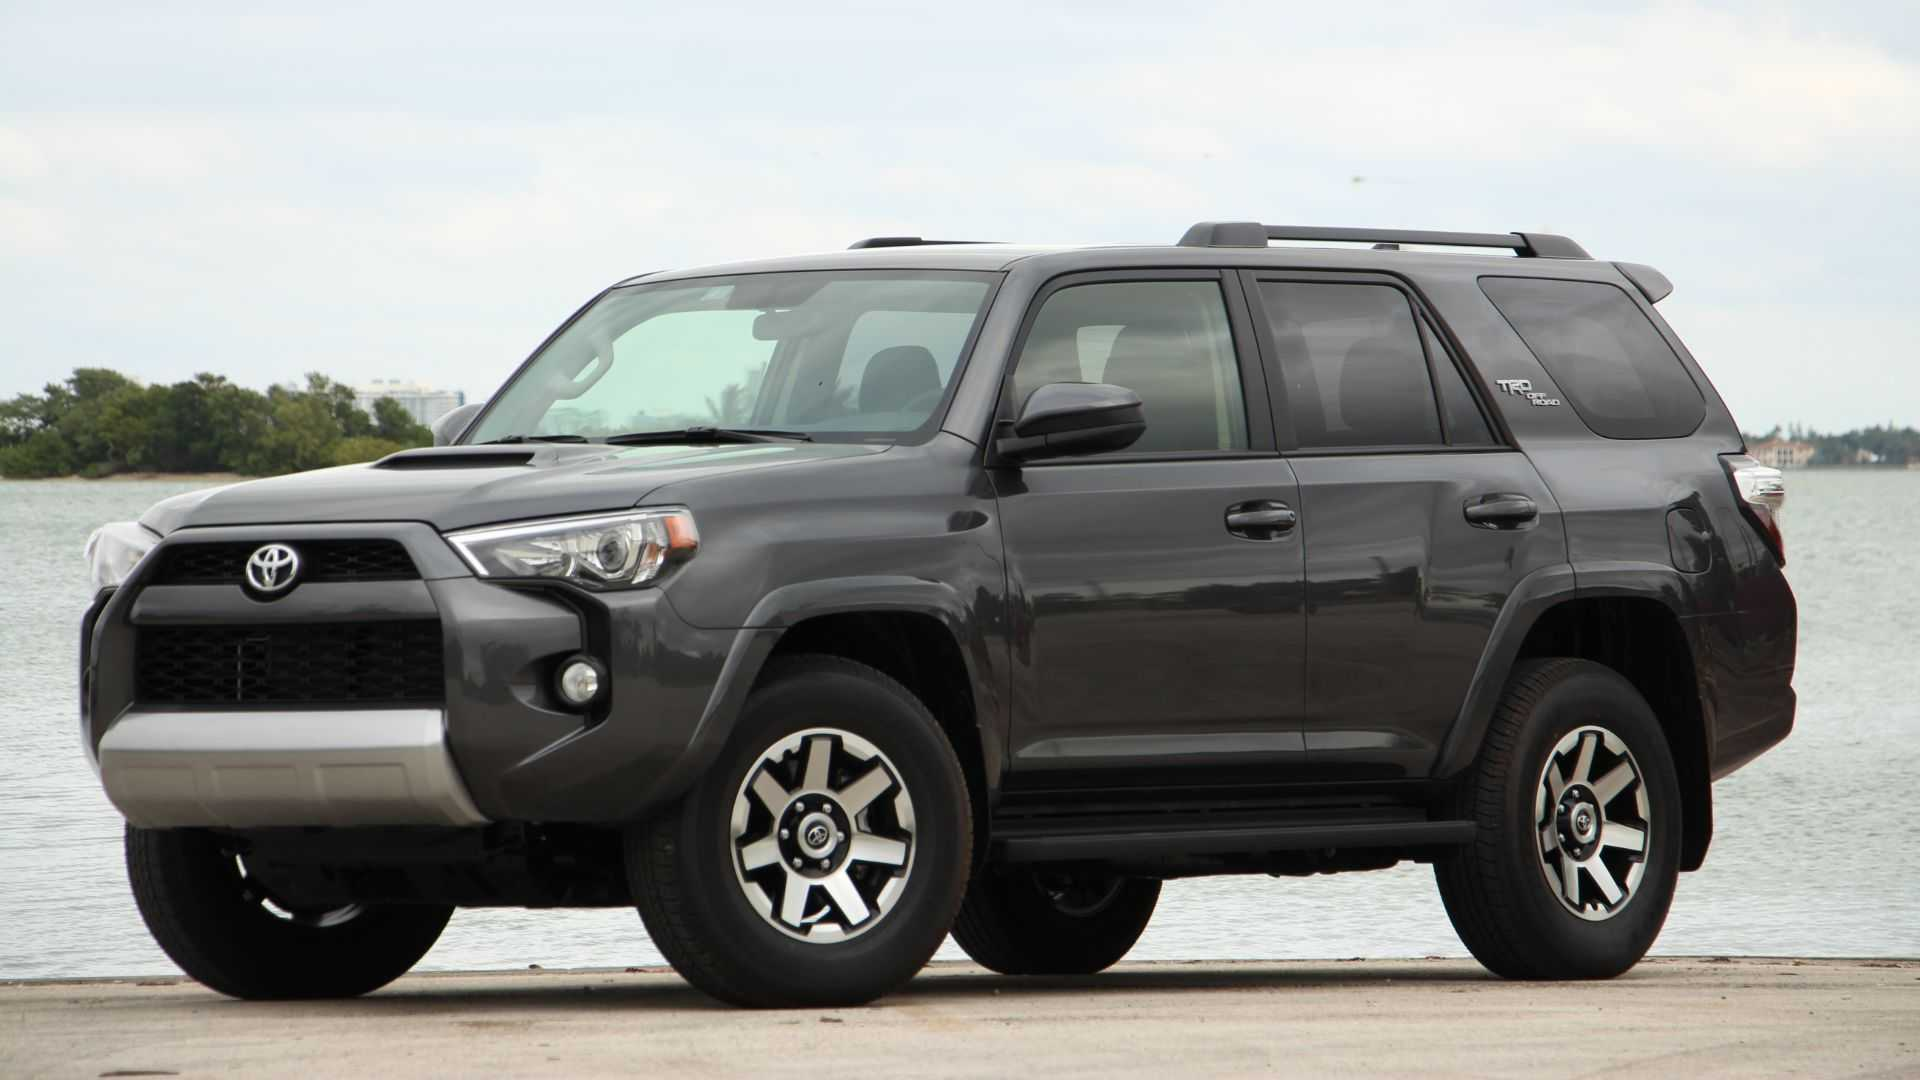 76 A 2019 Toyota 4Runner News Price And Review